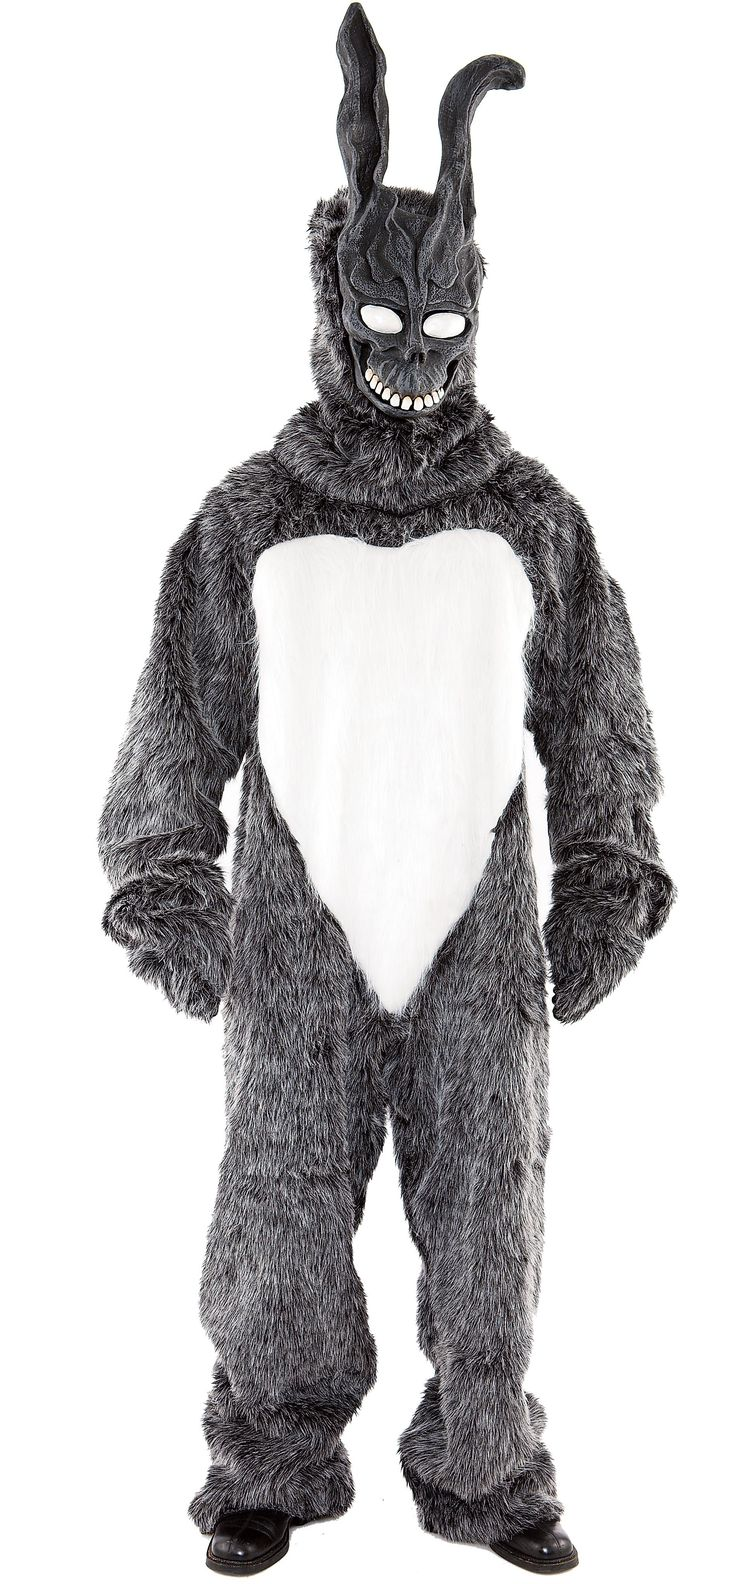 Donnie Darko - Frank Adult Costume from BuyCostumes.com